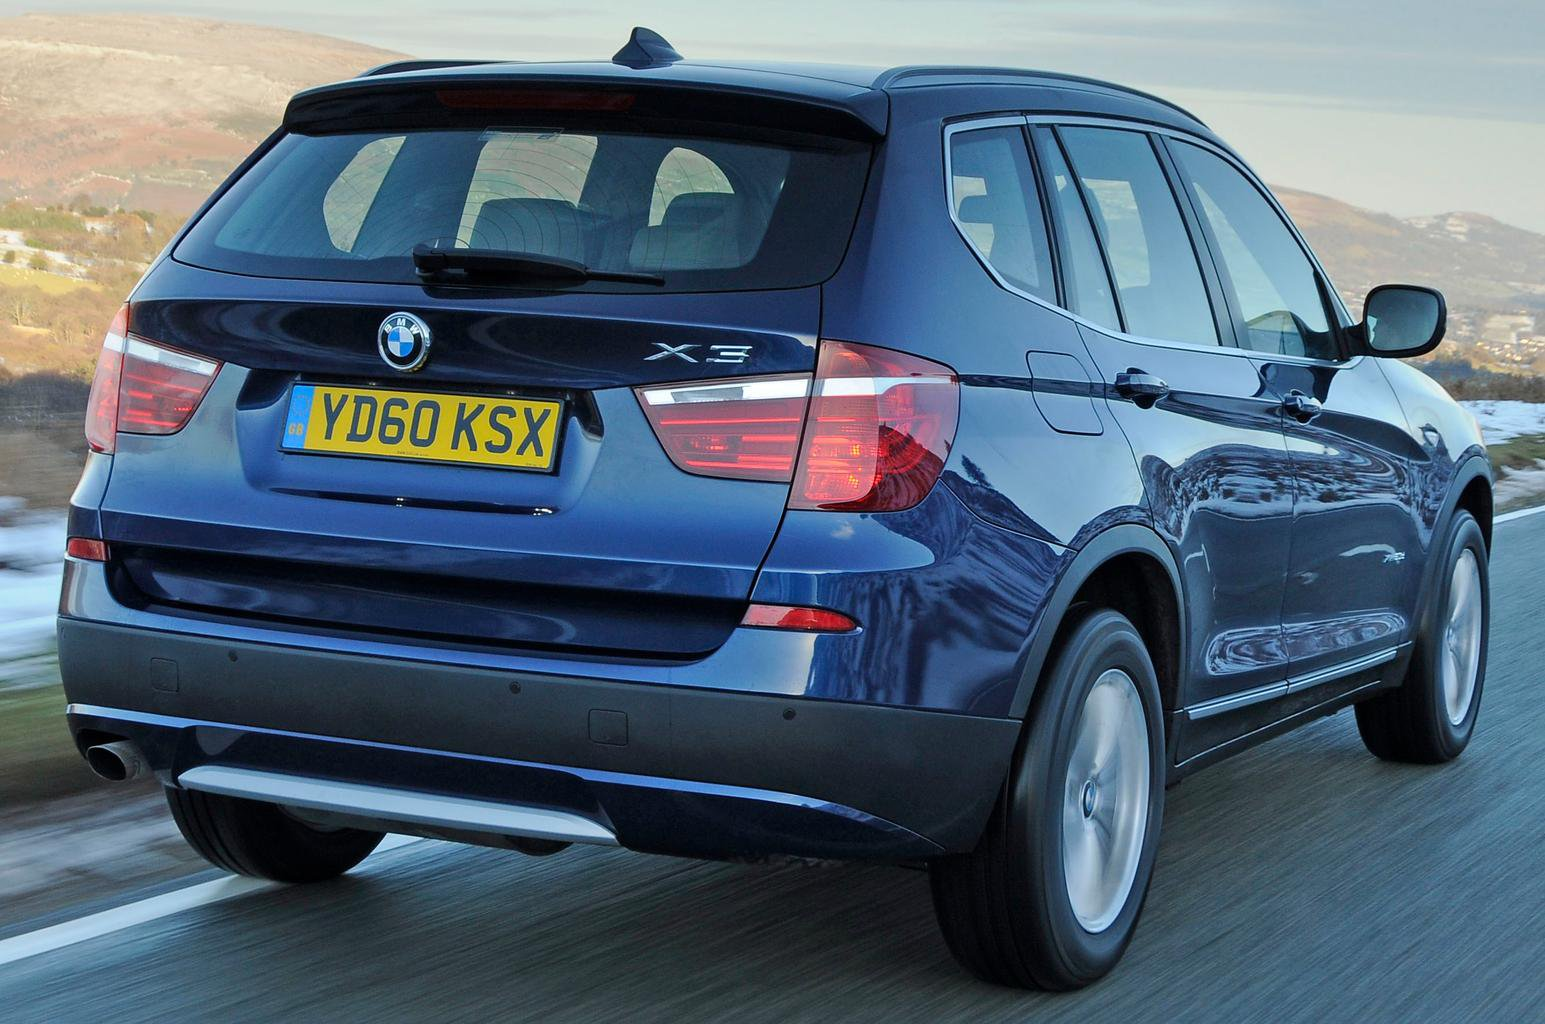 Used test – winter warmers: Audi Q5 vs BMW X3 vs Land Rover Freelander vs Volvo XC60